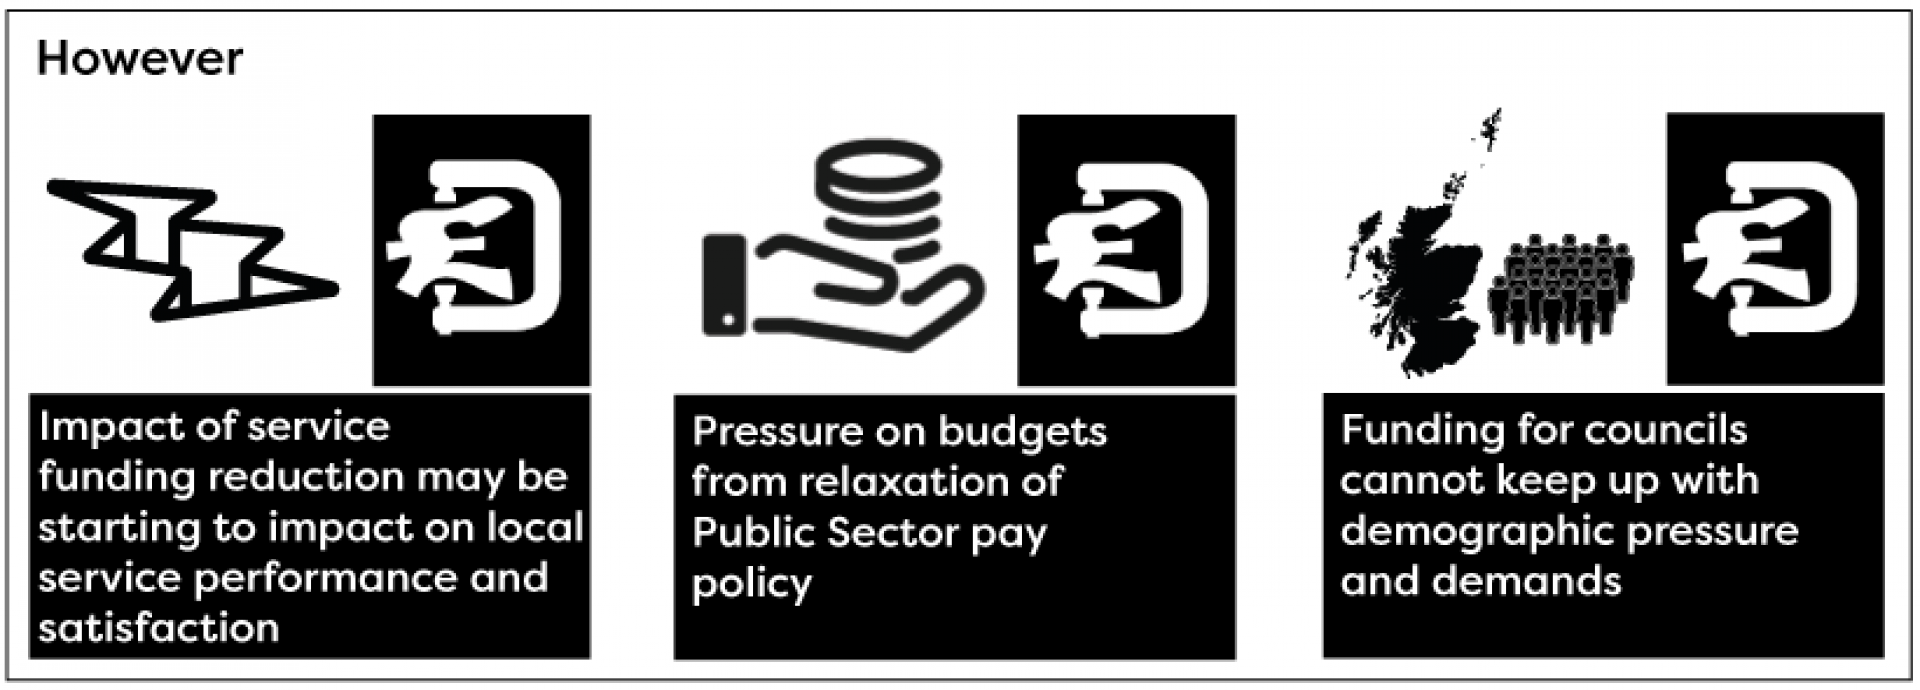 Service funding reduction, pressure on budgets and funding for councils are all under pressure